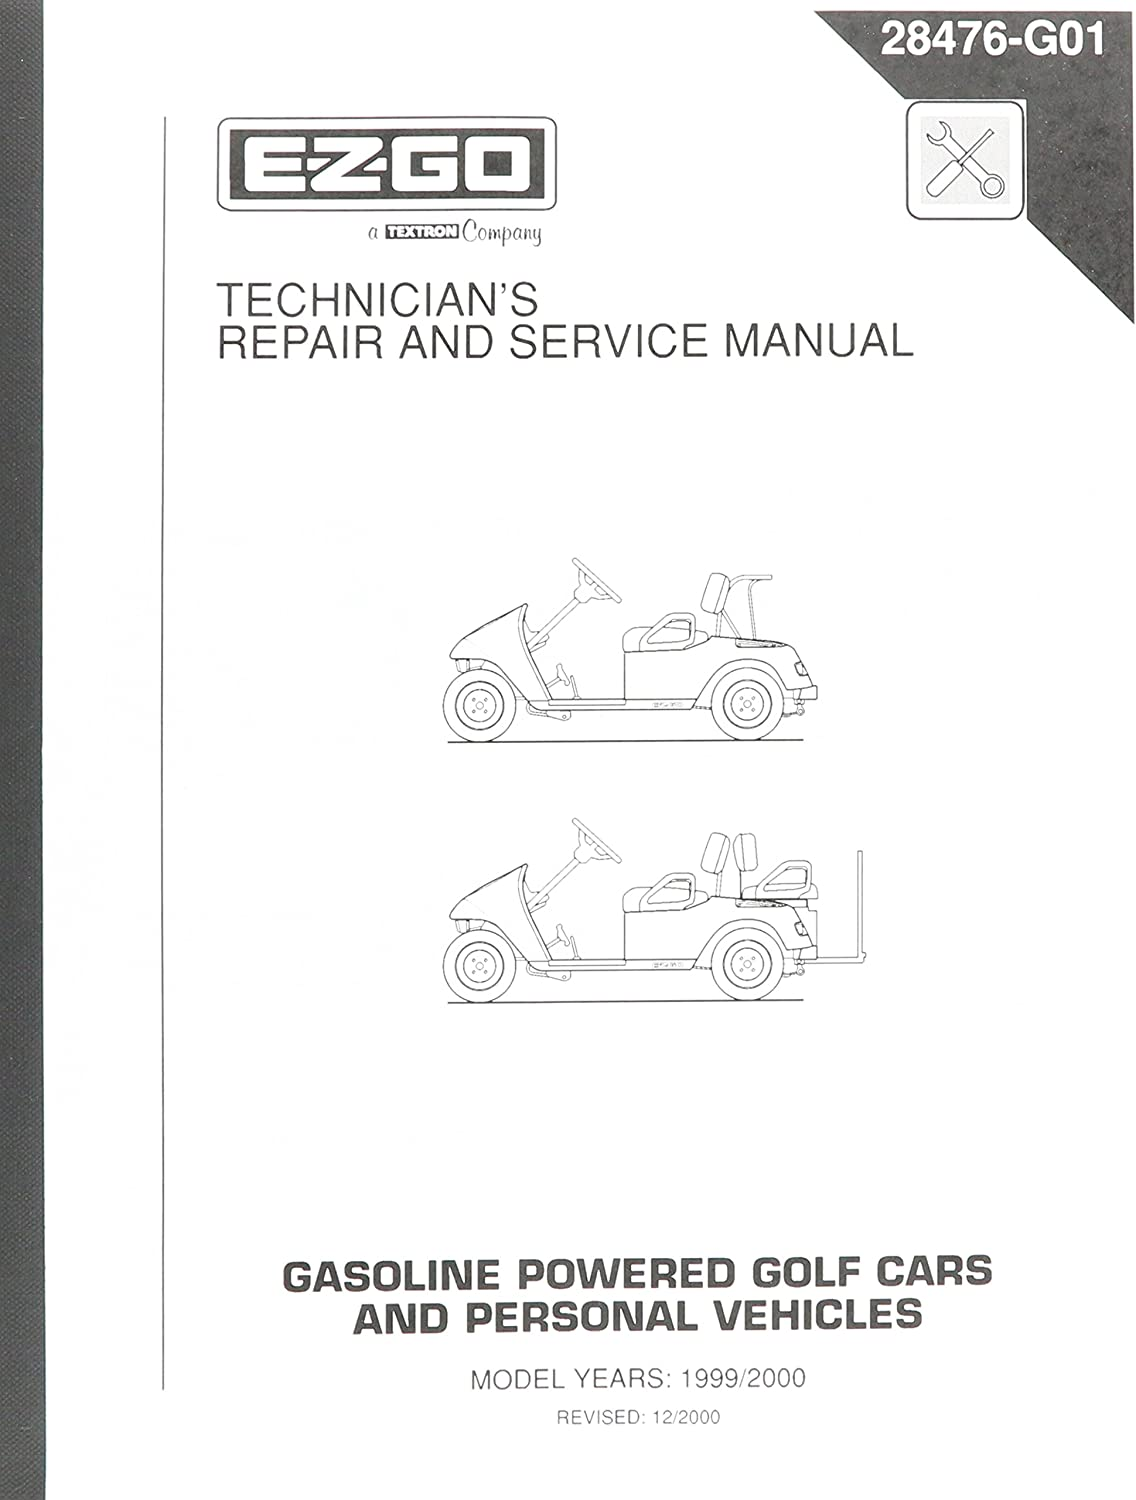 Amazon Com Ezgo 28476g01 1999 2000 Technician S Repair And Service Manual For Gas Txt Golf Cars Personal Vehicles Outdoor Decorative Fences Garden Outdoor